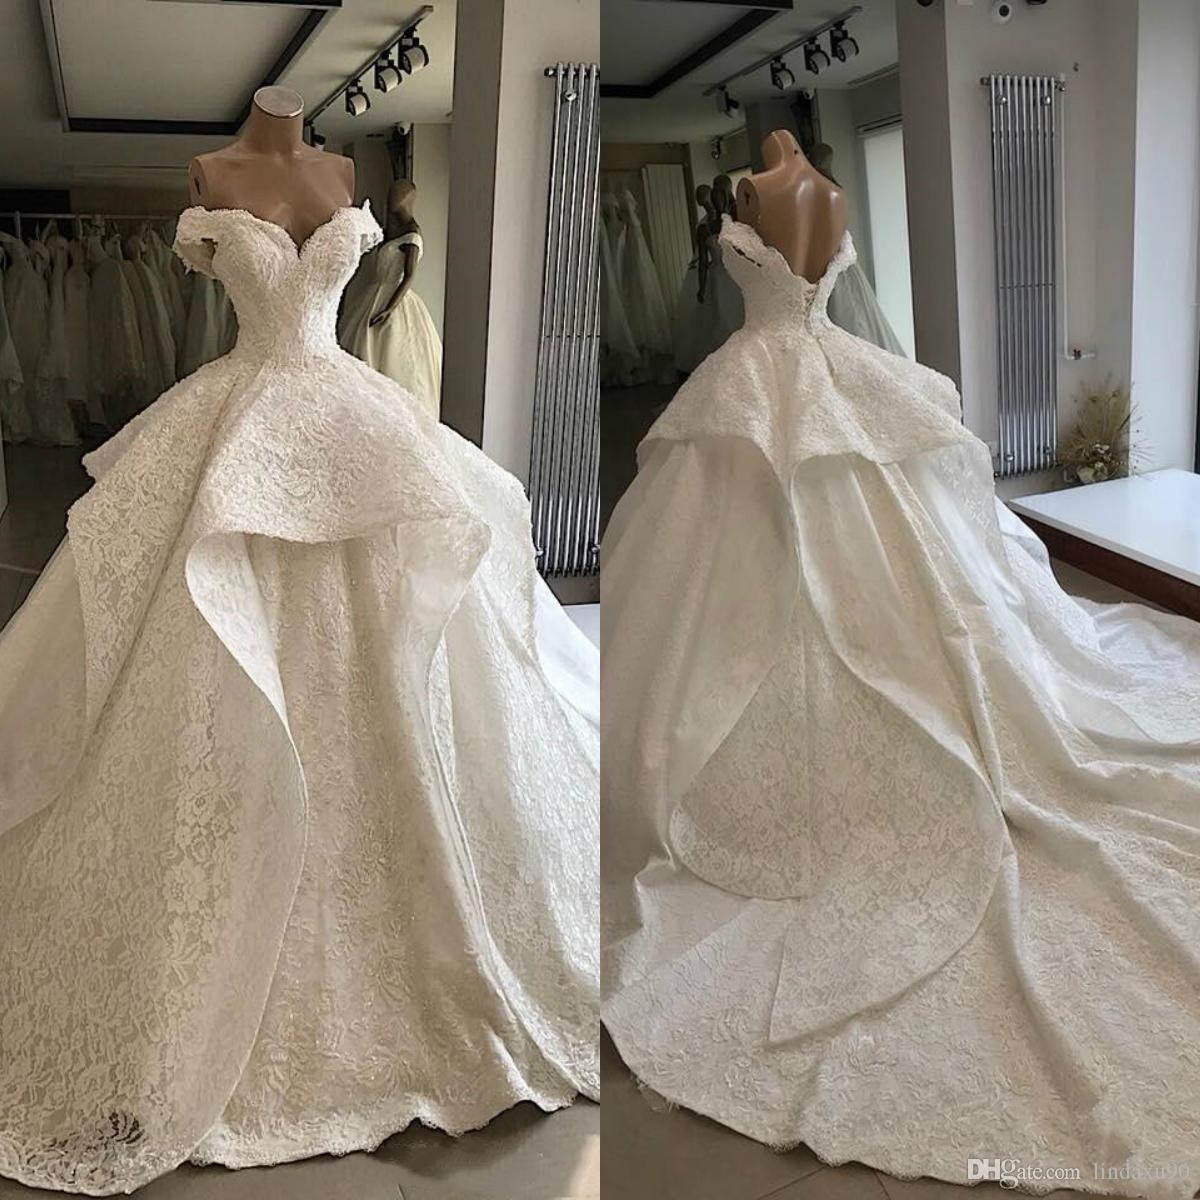 Short Sleeves Ball Gown Wedding Dresses 2019 Modest Full Lace Bridal Gowns Off The Shoulder Robe De Marriage Luxurious Wedding Wear